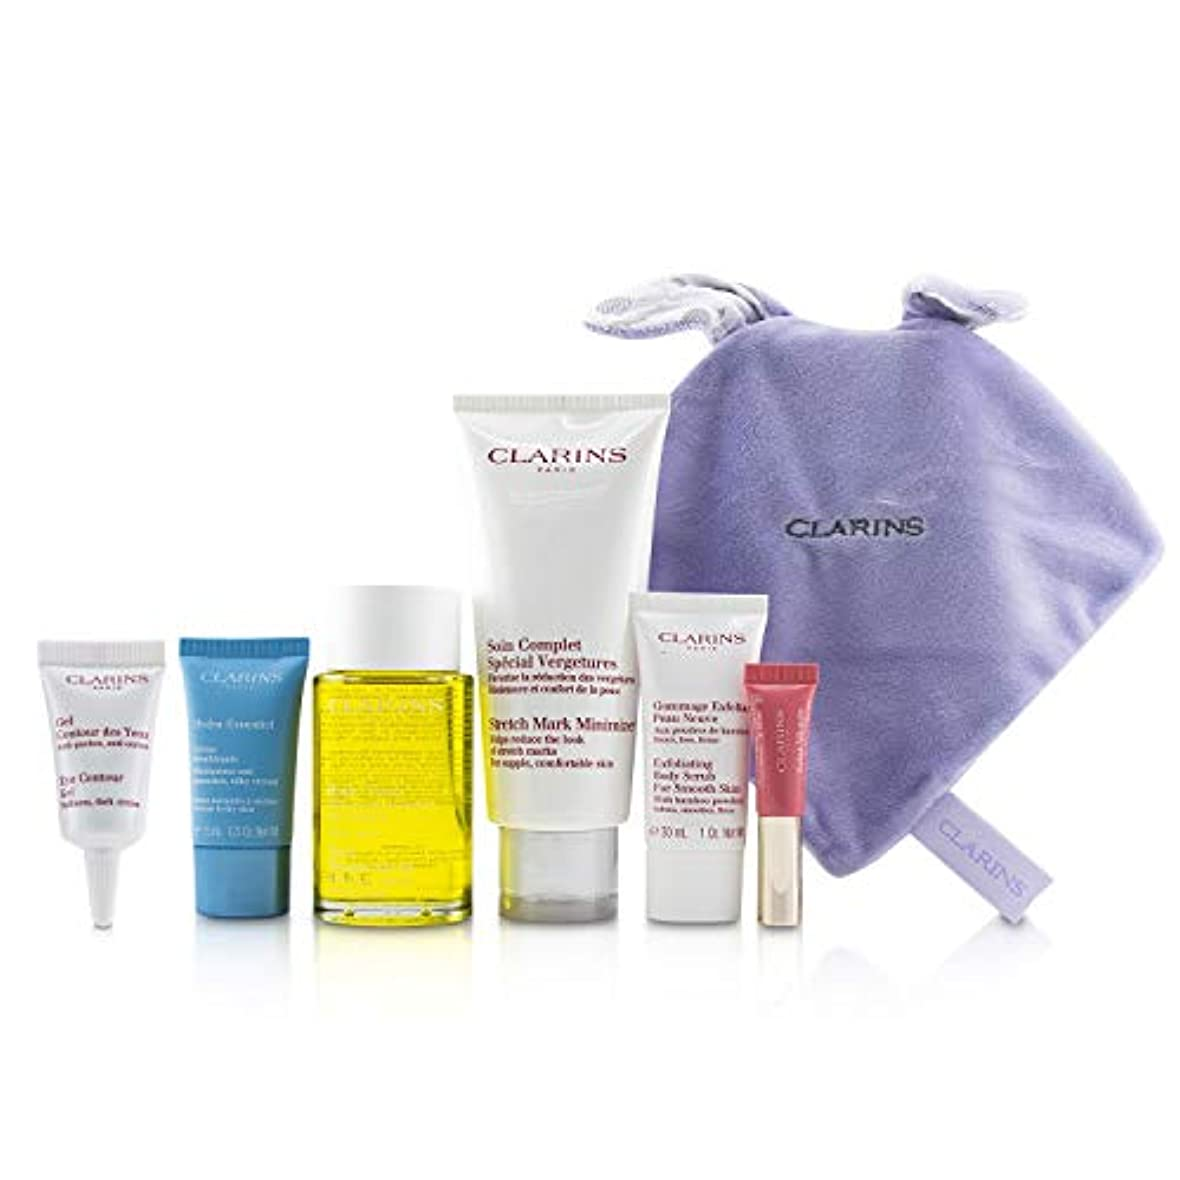 希少性透けて見える試みるクラランス Maternity Set: Tonic Treatment Oil+ Stretch Mark Minimizer+Hydra-Essentiel Cream+ Body Scrub+ Eye Gel+ Lip Perfector+ Bag 6pcs+1bag並行輸入品